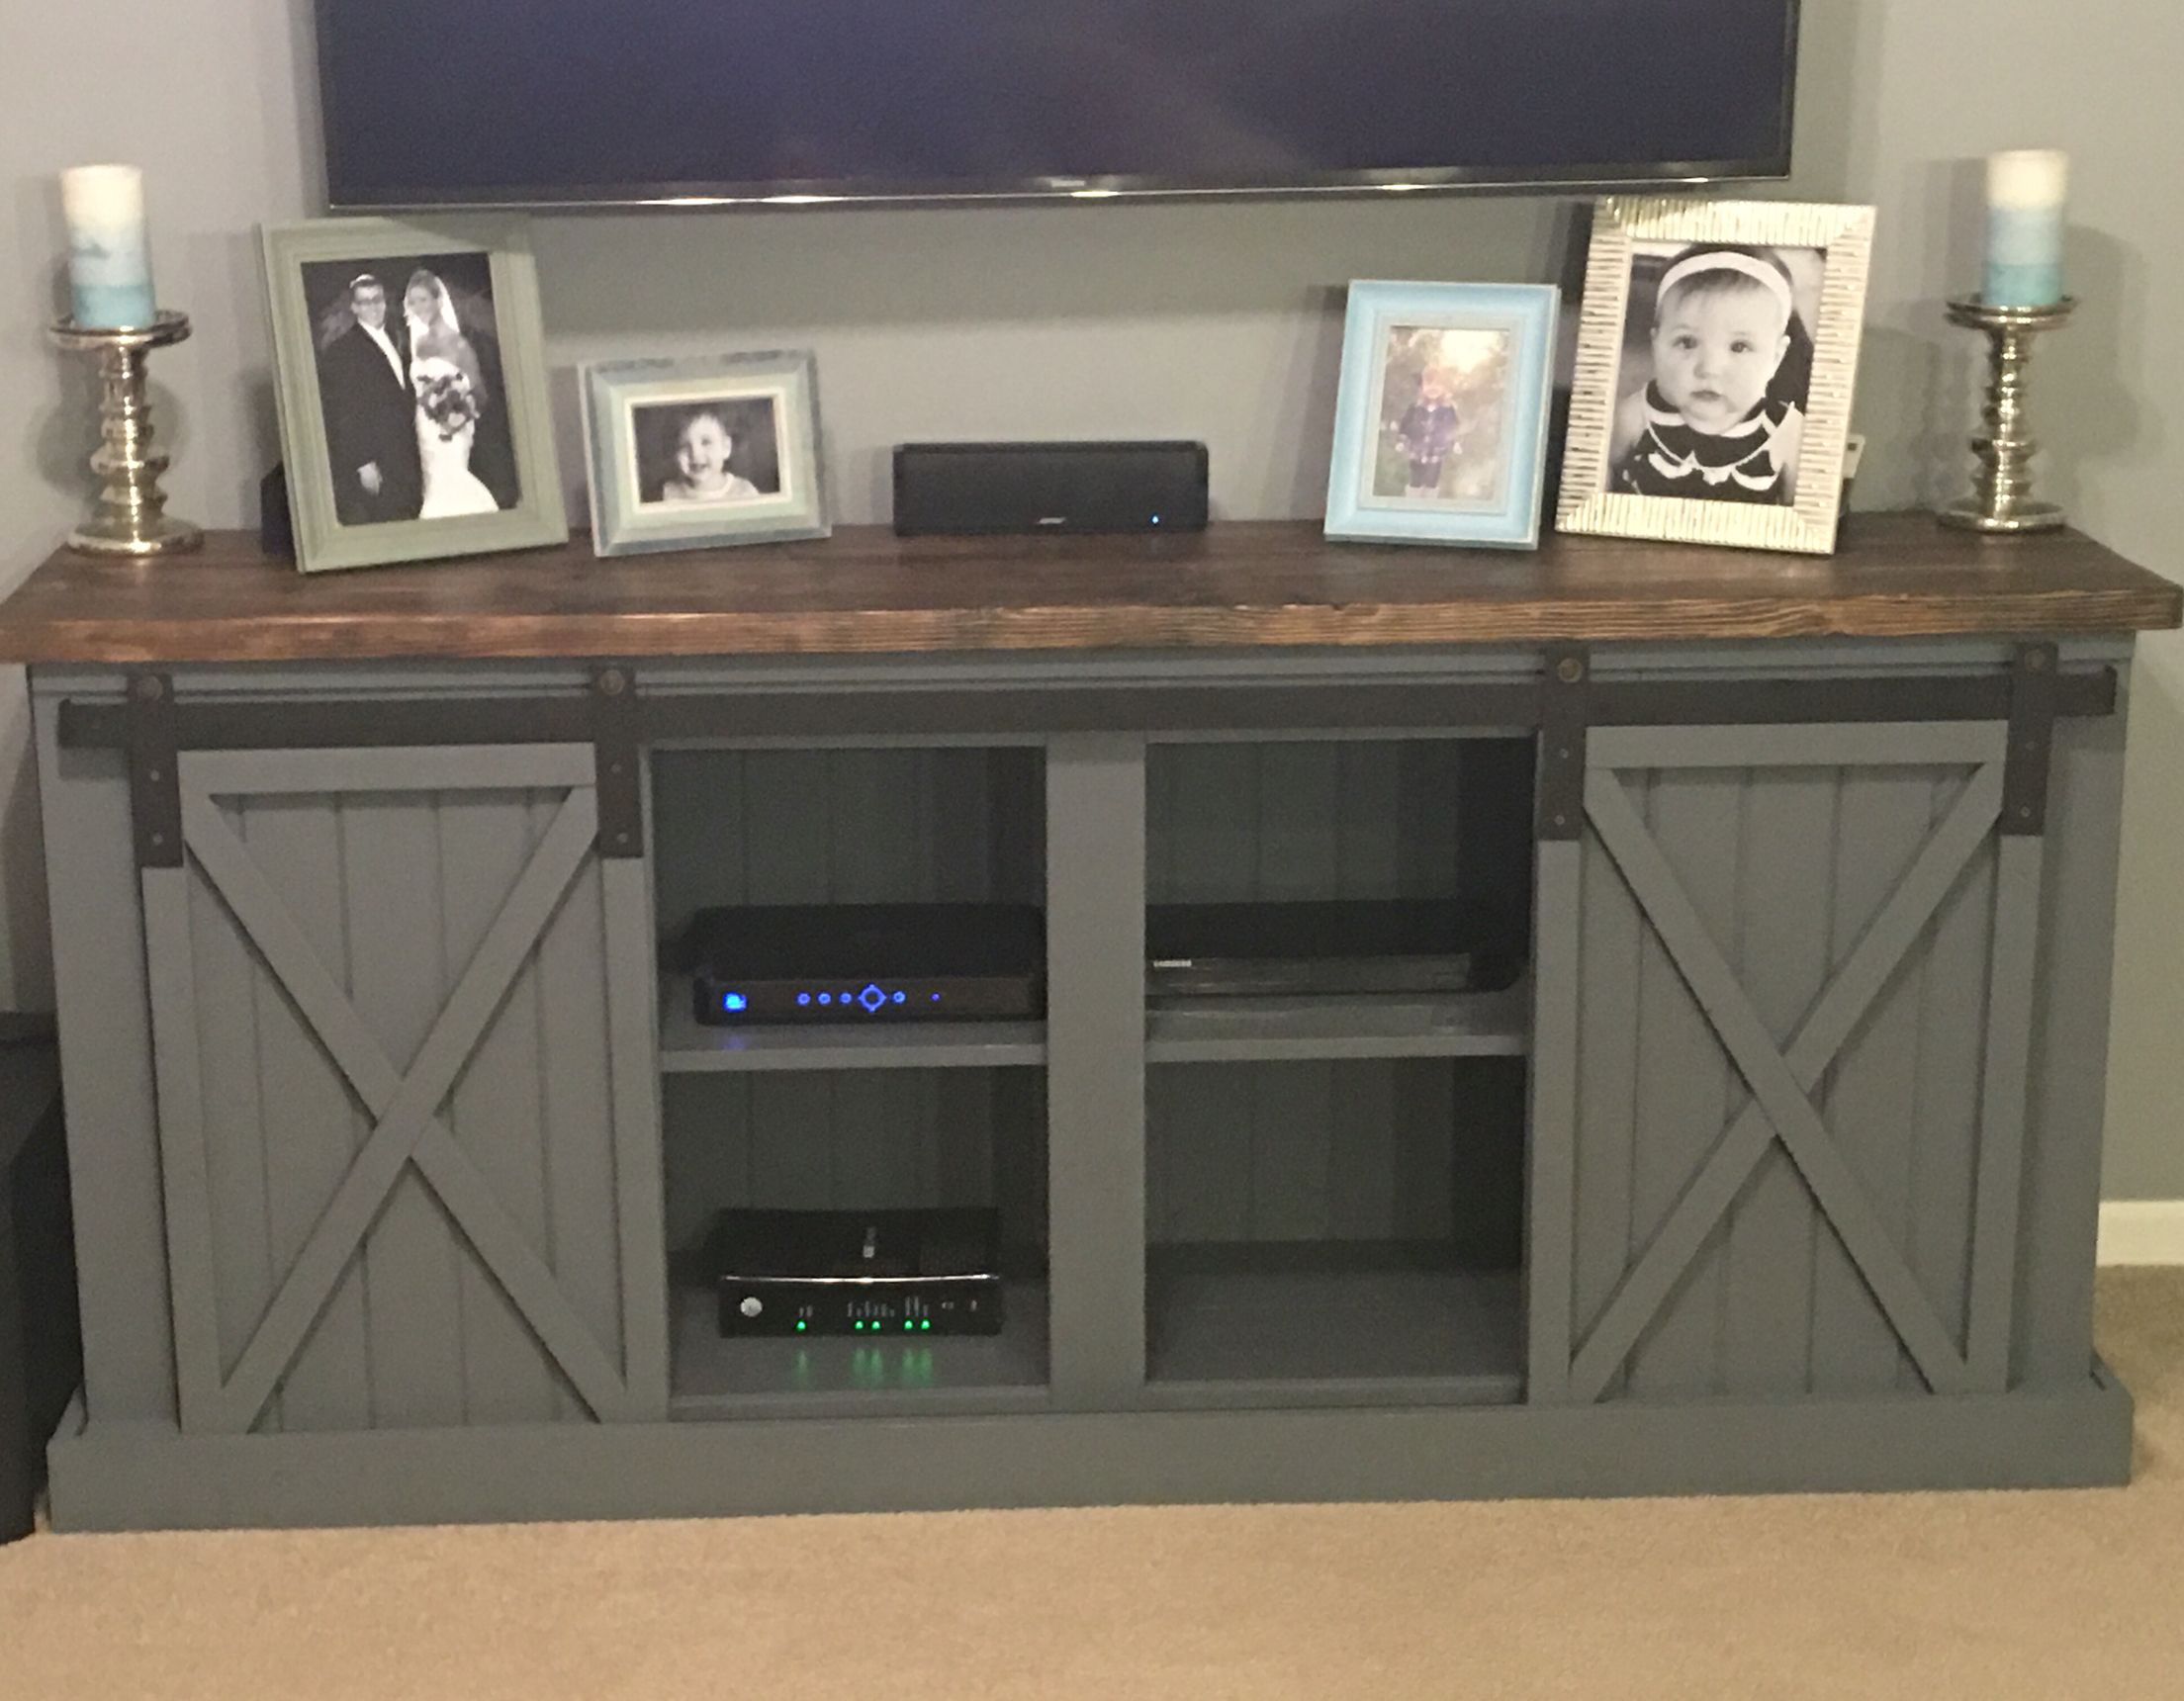 Our Gorgeous Custom Built Entertainment Center From Ninav Interiors Check Them Out On Facebook And Instagram